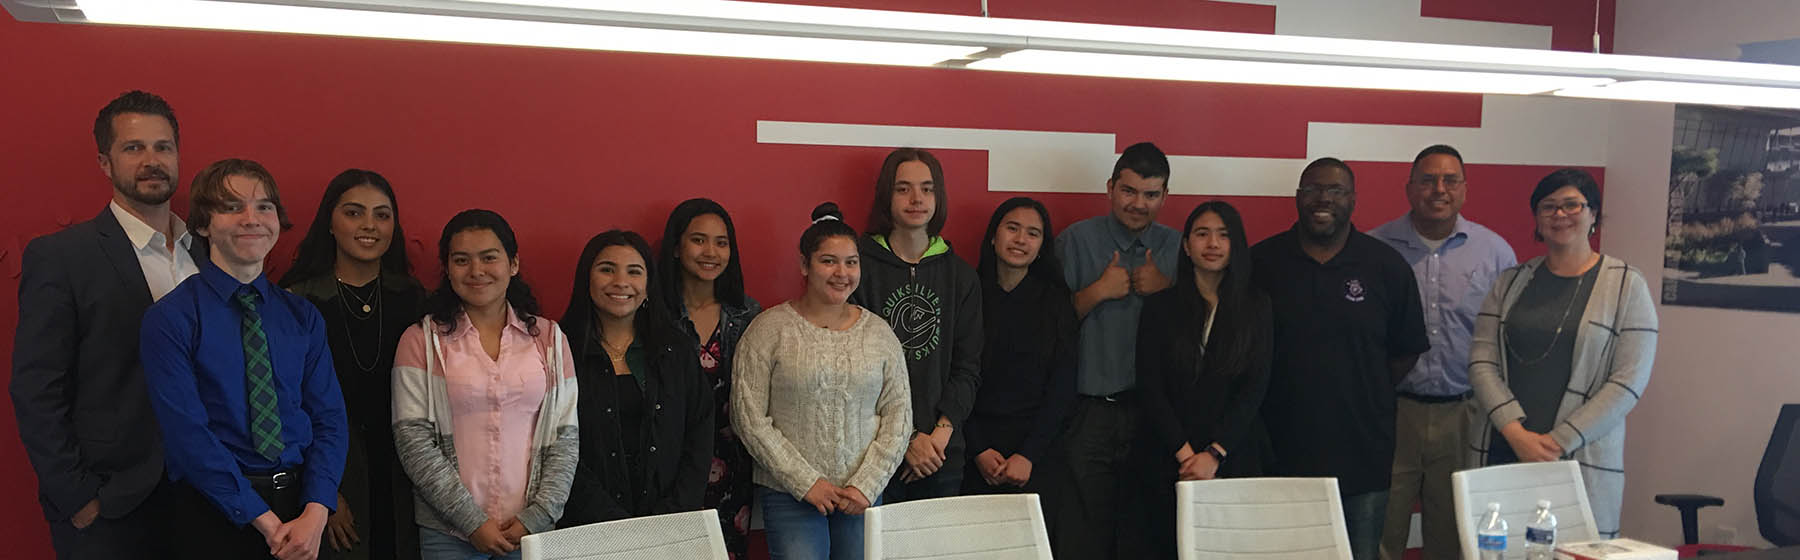 BCA Hosts Students from Sacramento's School of Engineering & Sciences